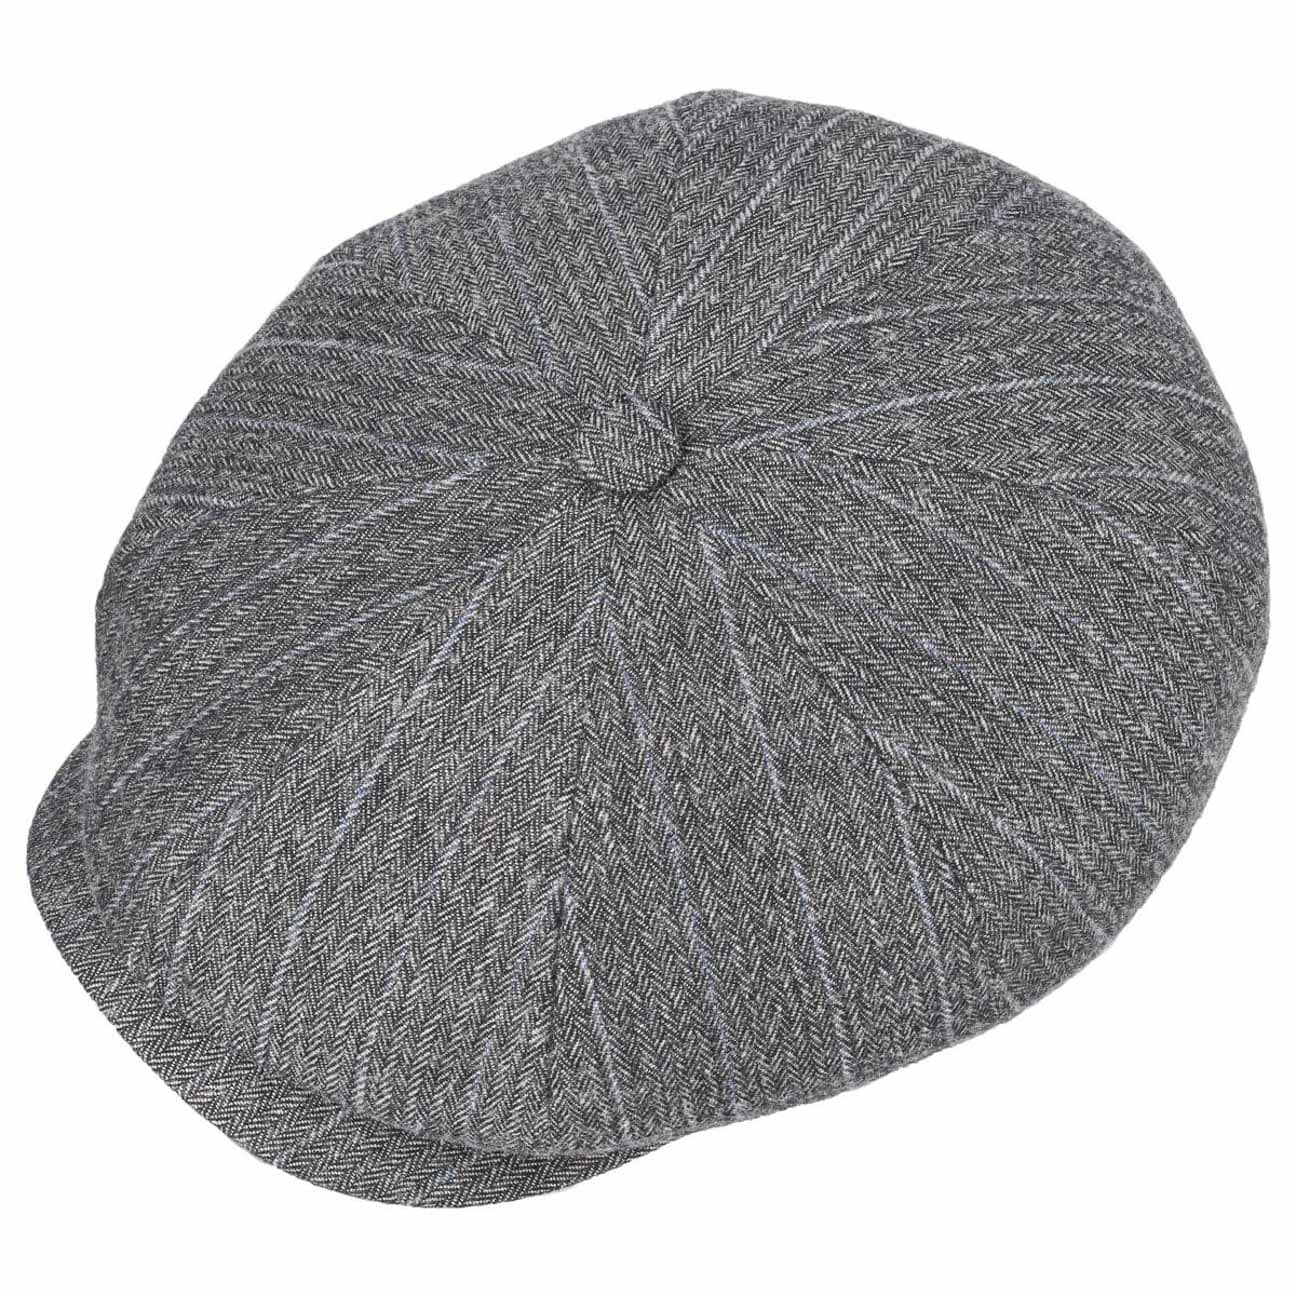 b72a1f9f4 Hatteras Virgin Wool Cap by Stetson